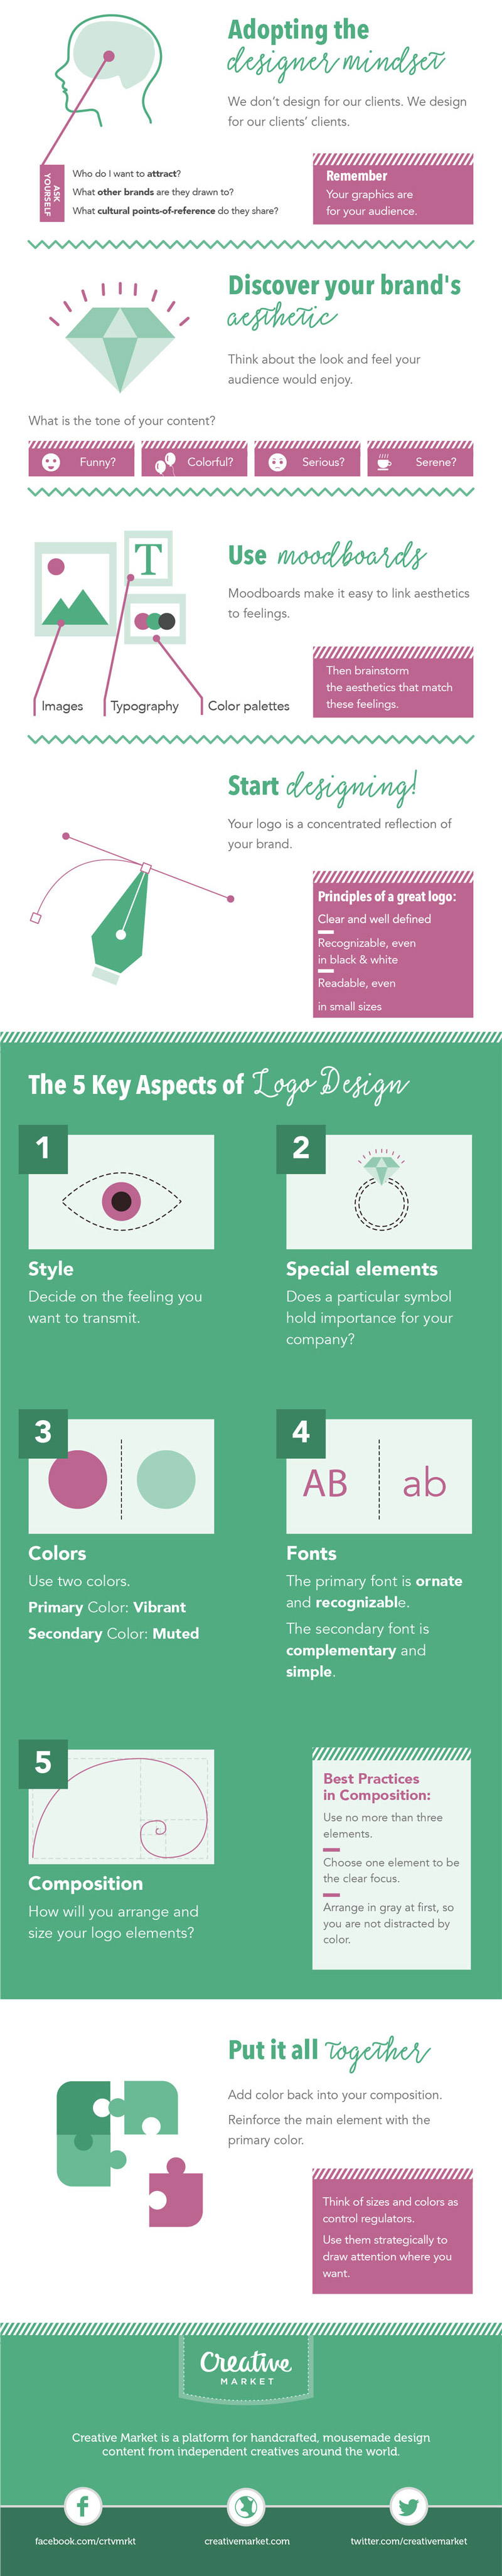 what-every-blogger-needs-to-know-about-logo-design-infographic-02